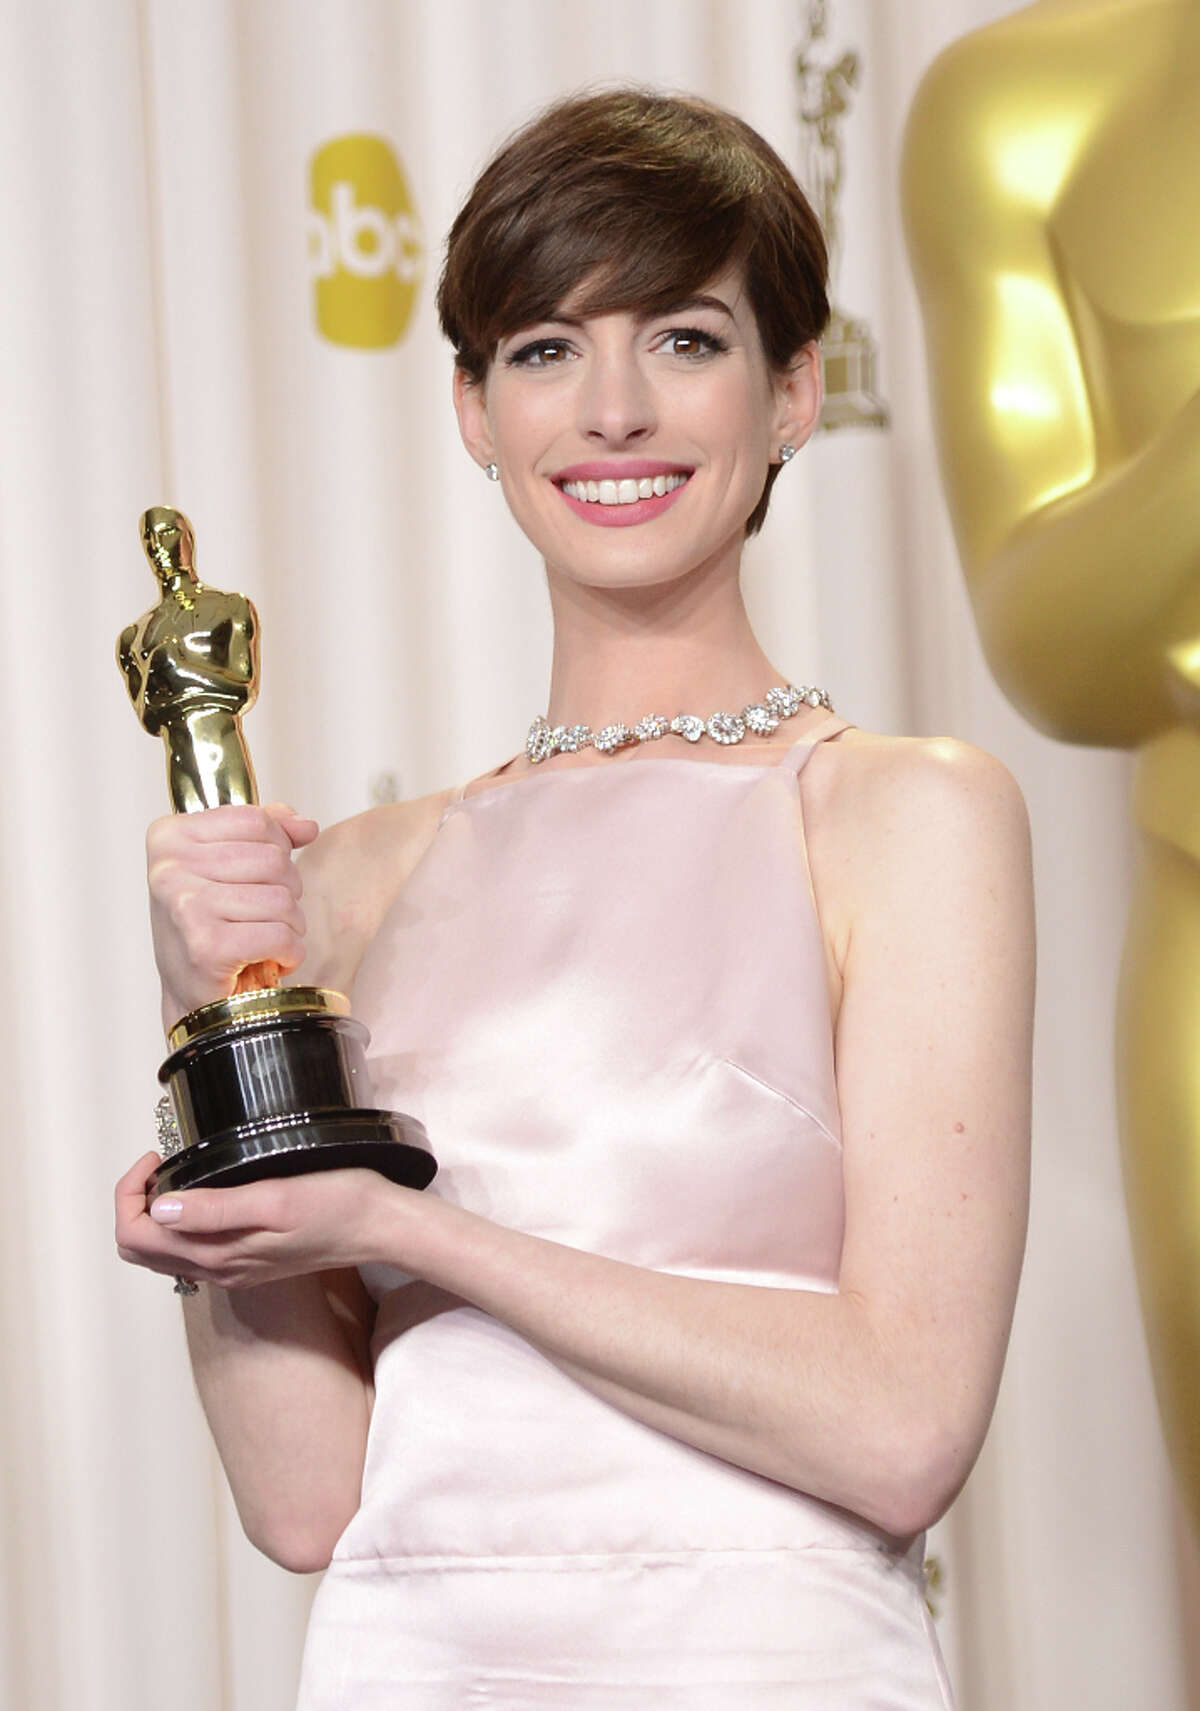 Anne Hathaway, fresh off her Best Supporting Actress Oscar for